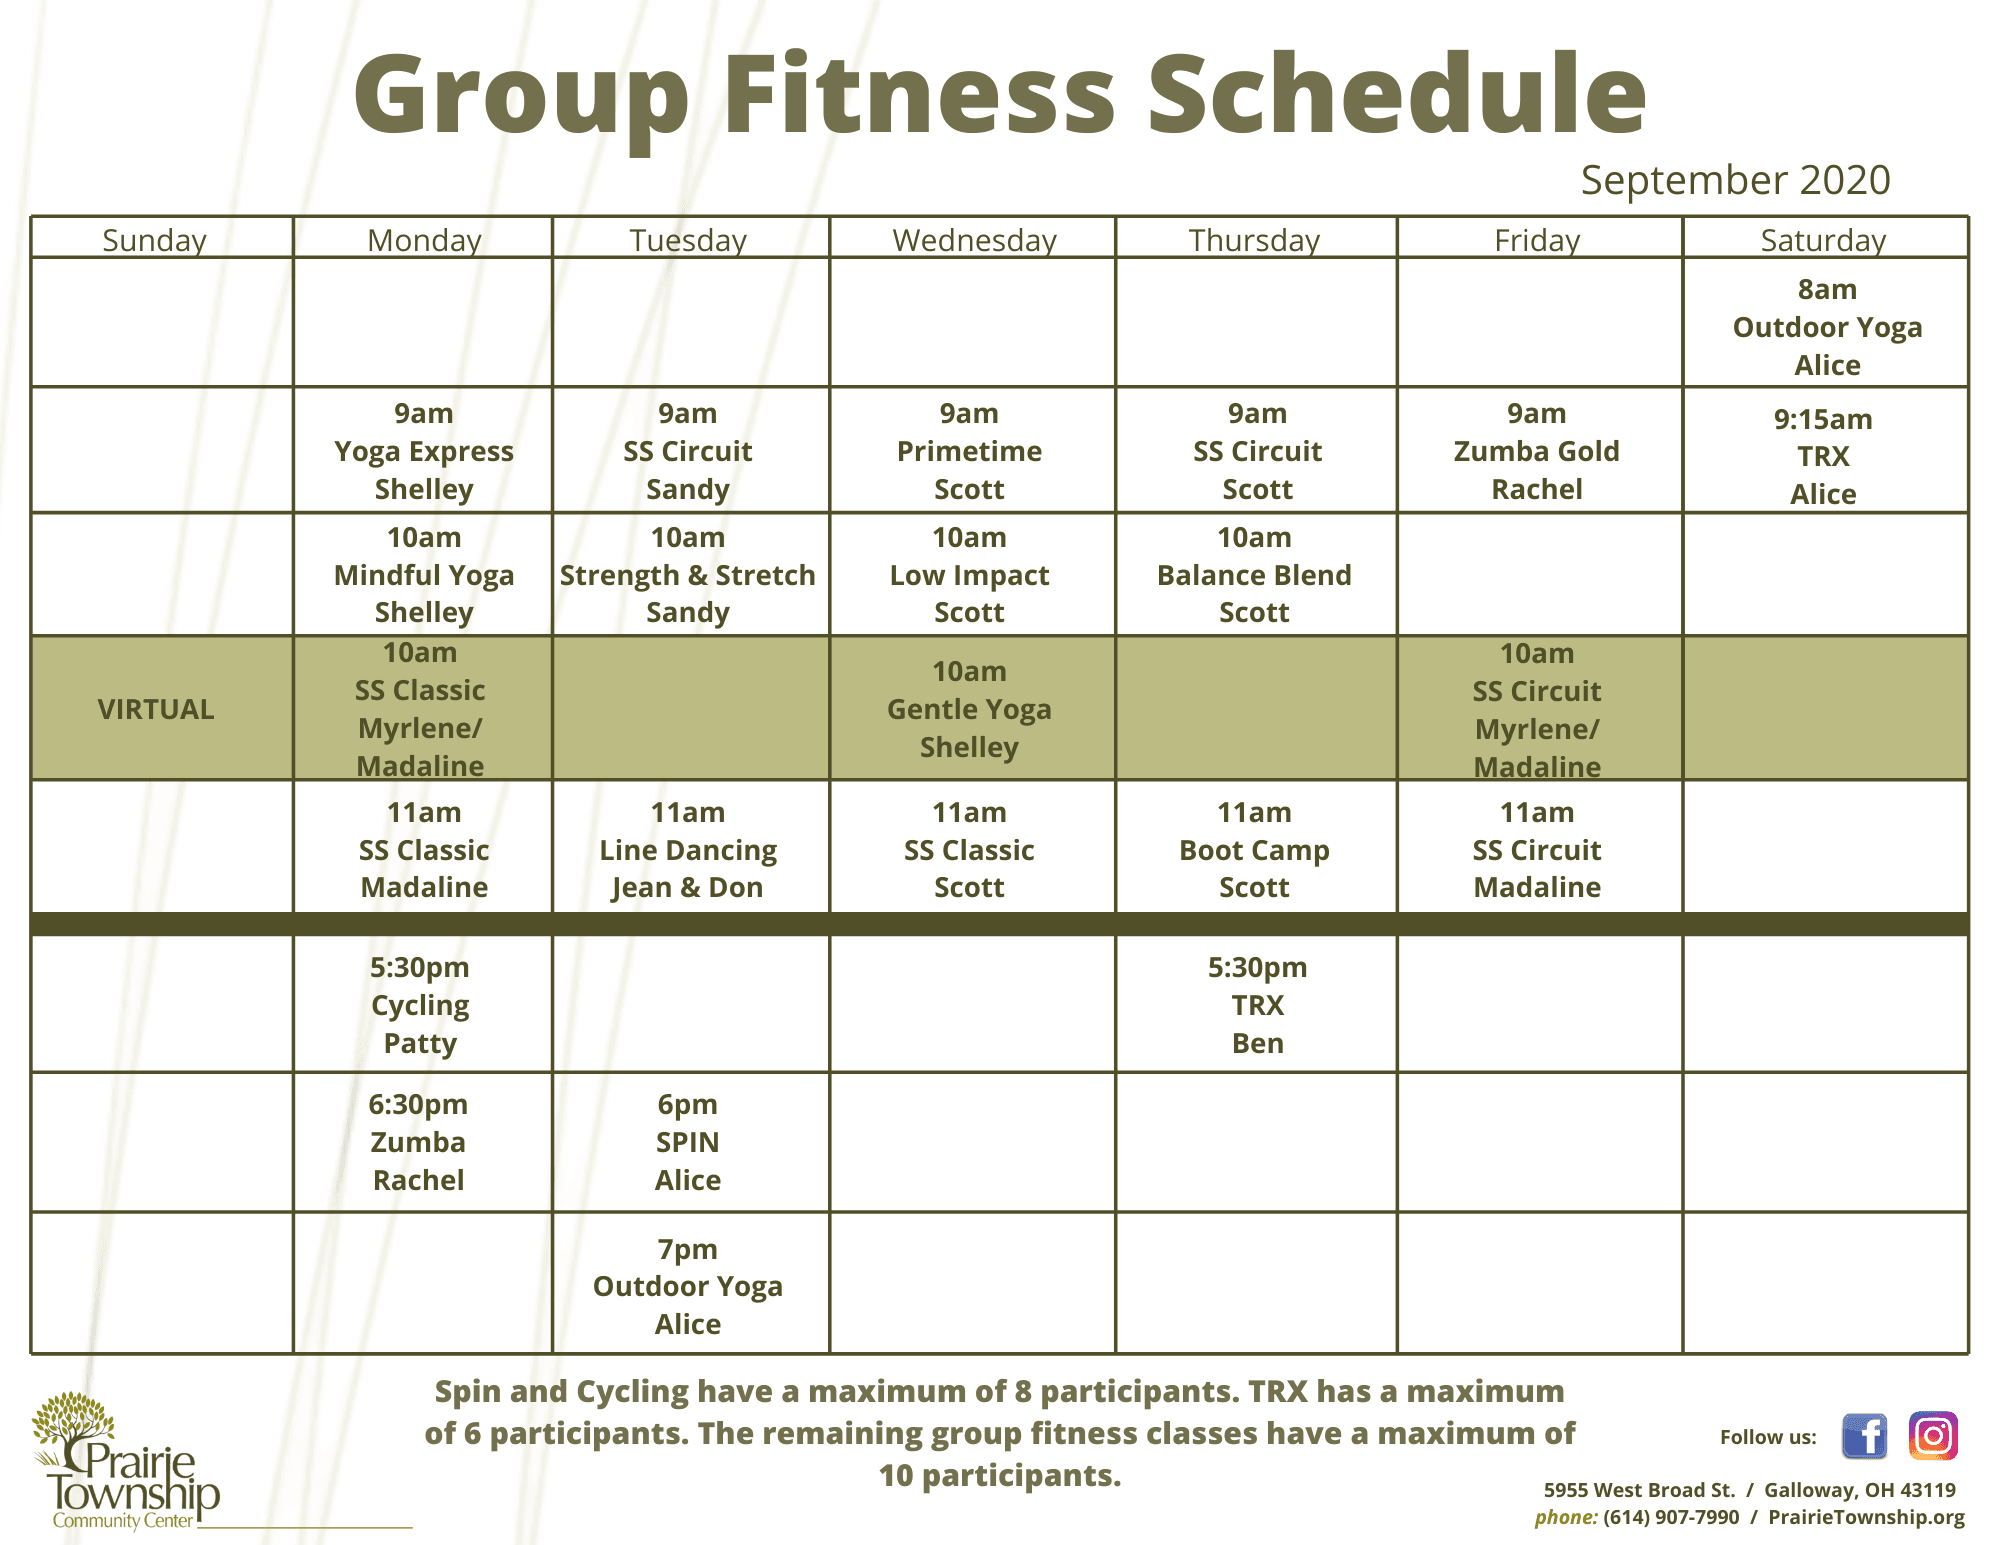 Updated Group Fitness Schedule